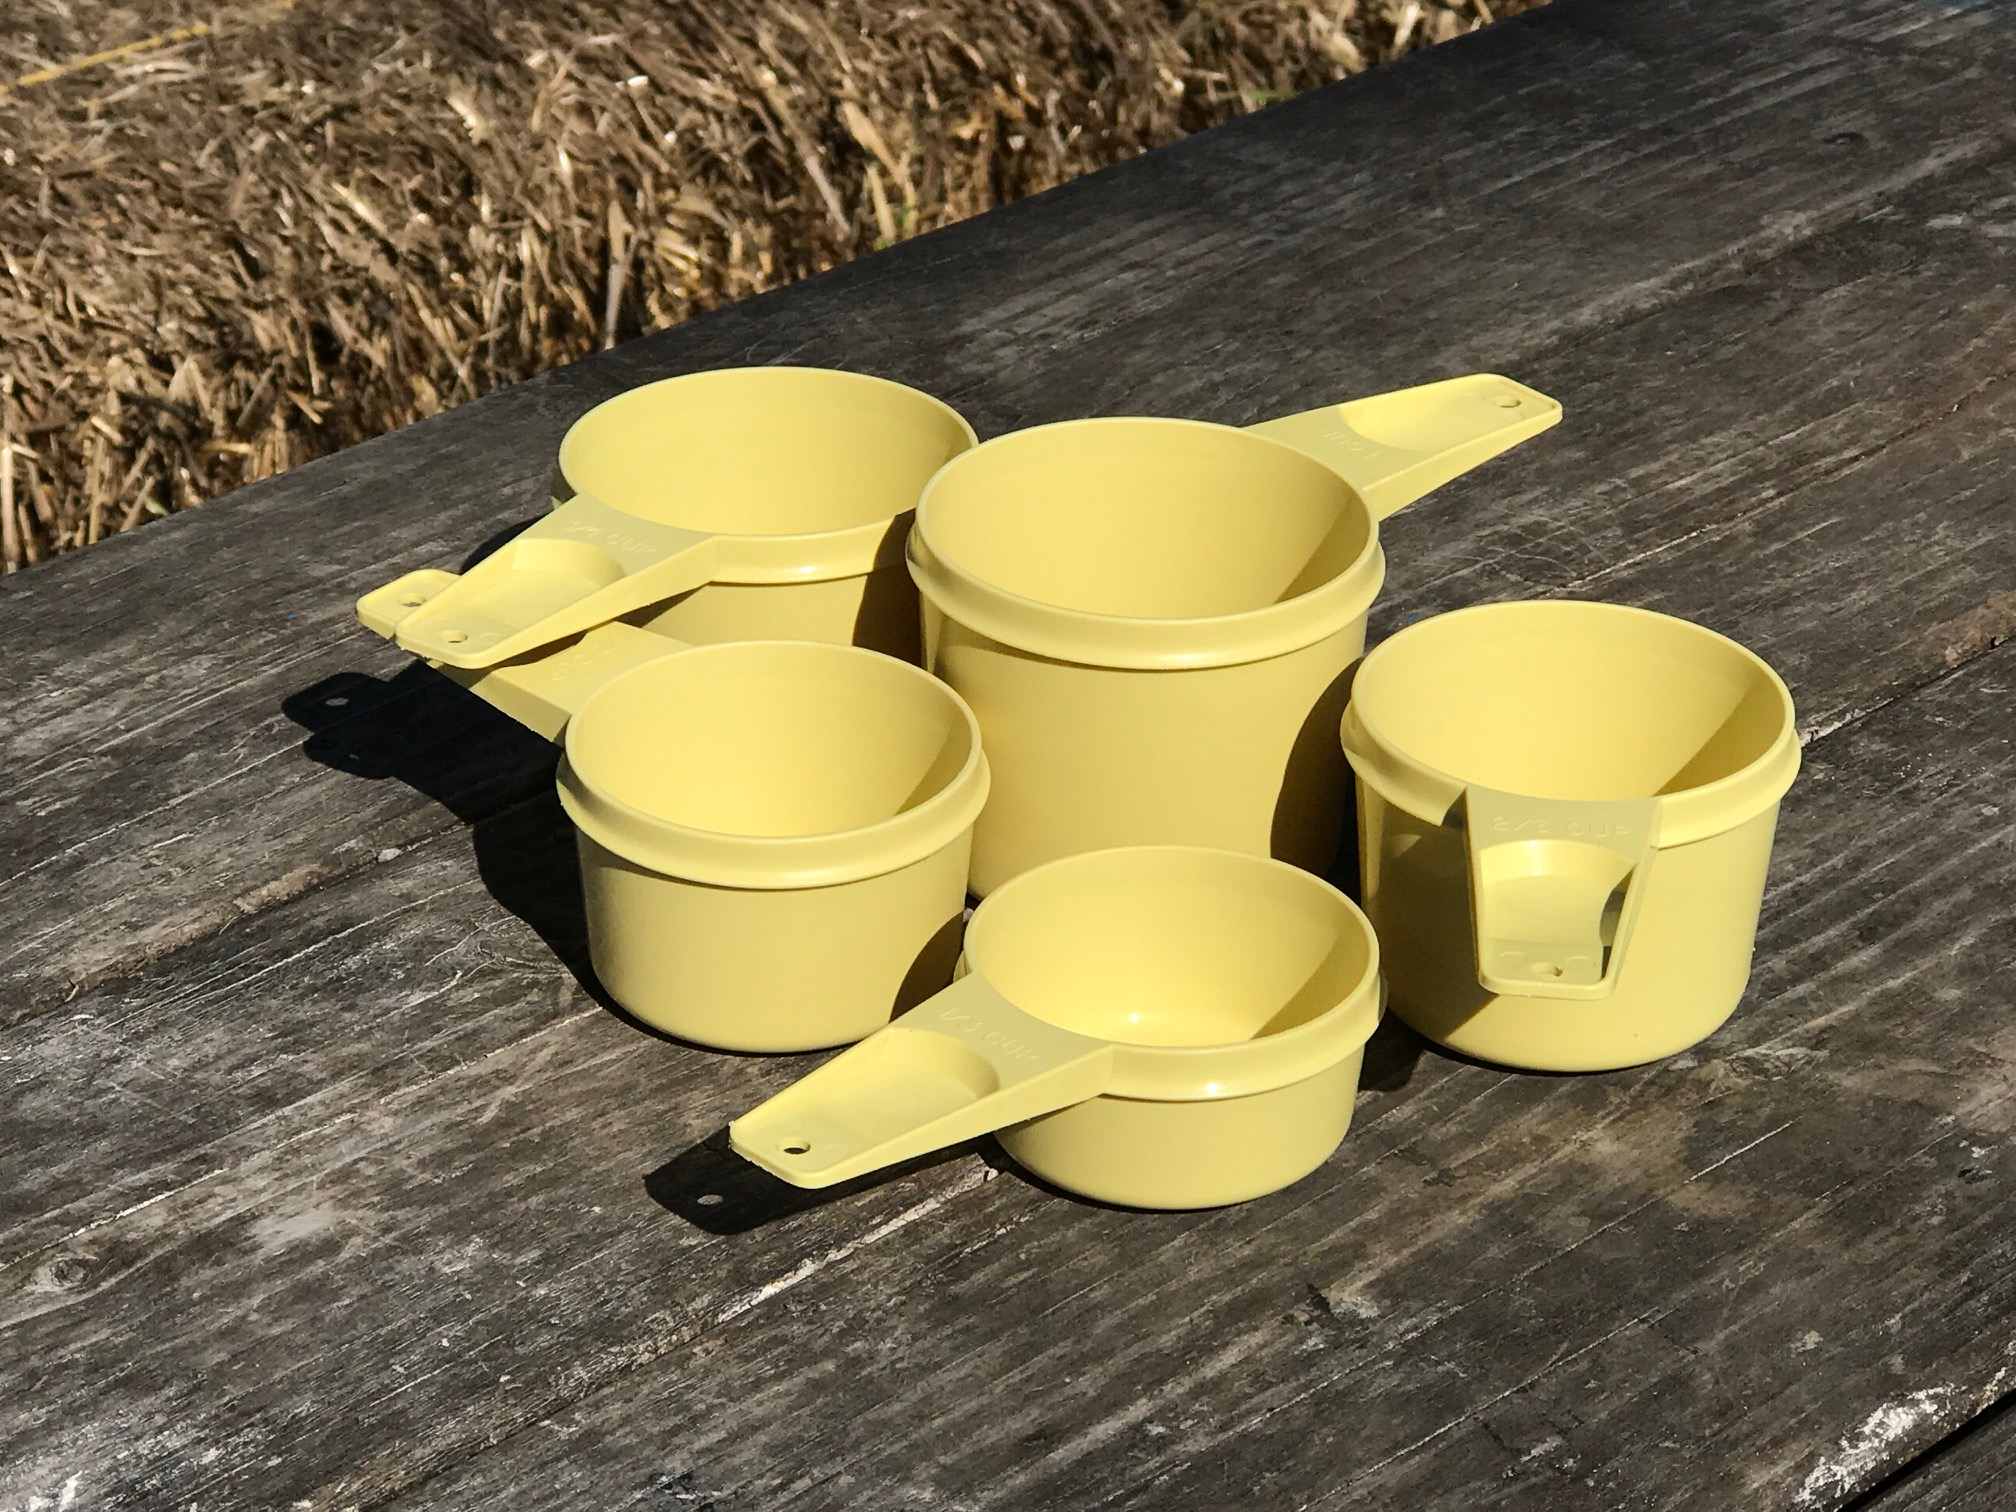 Stop Using Your Vintage Tupperware Now These Measuring Cups Are Positive For 2 103 Ppm Lead 250 Ppm Arsenic Lead Safe Mama